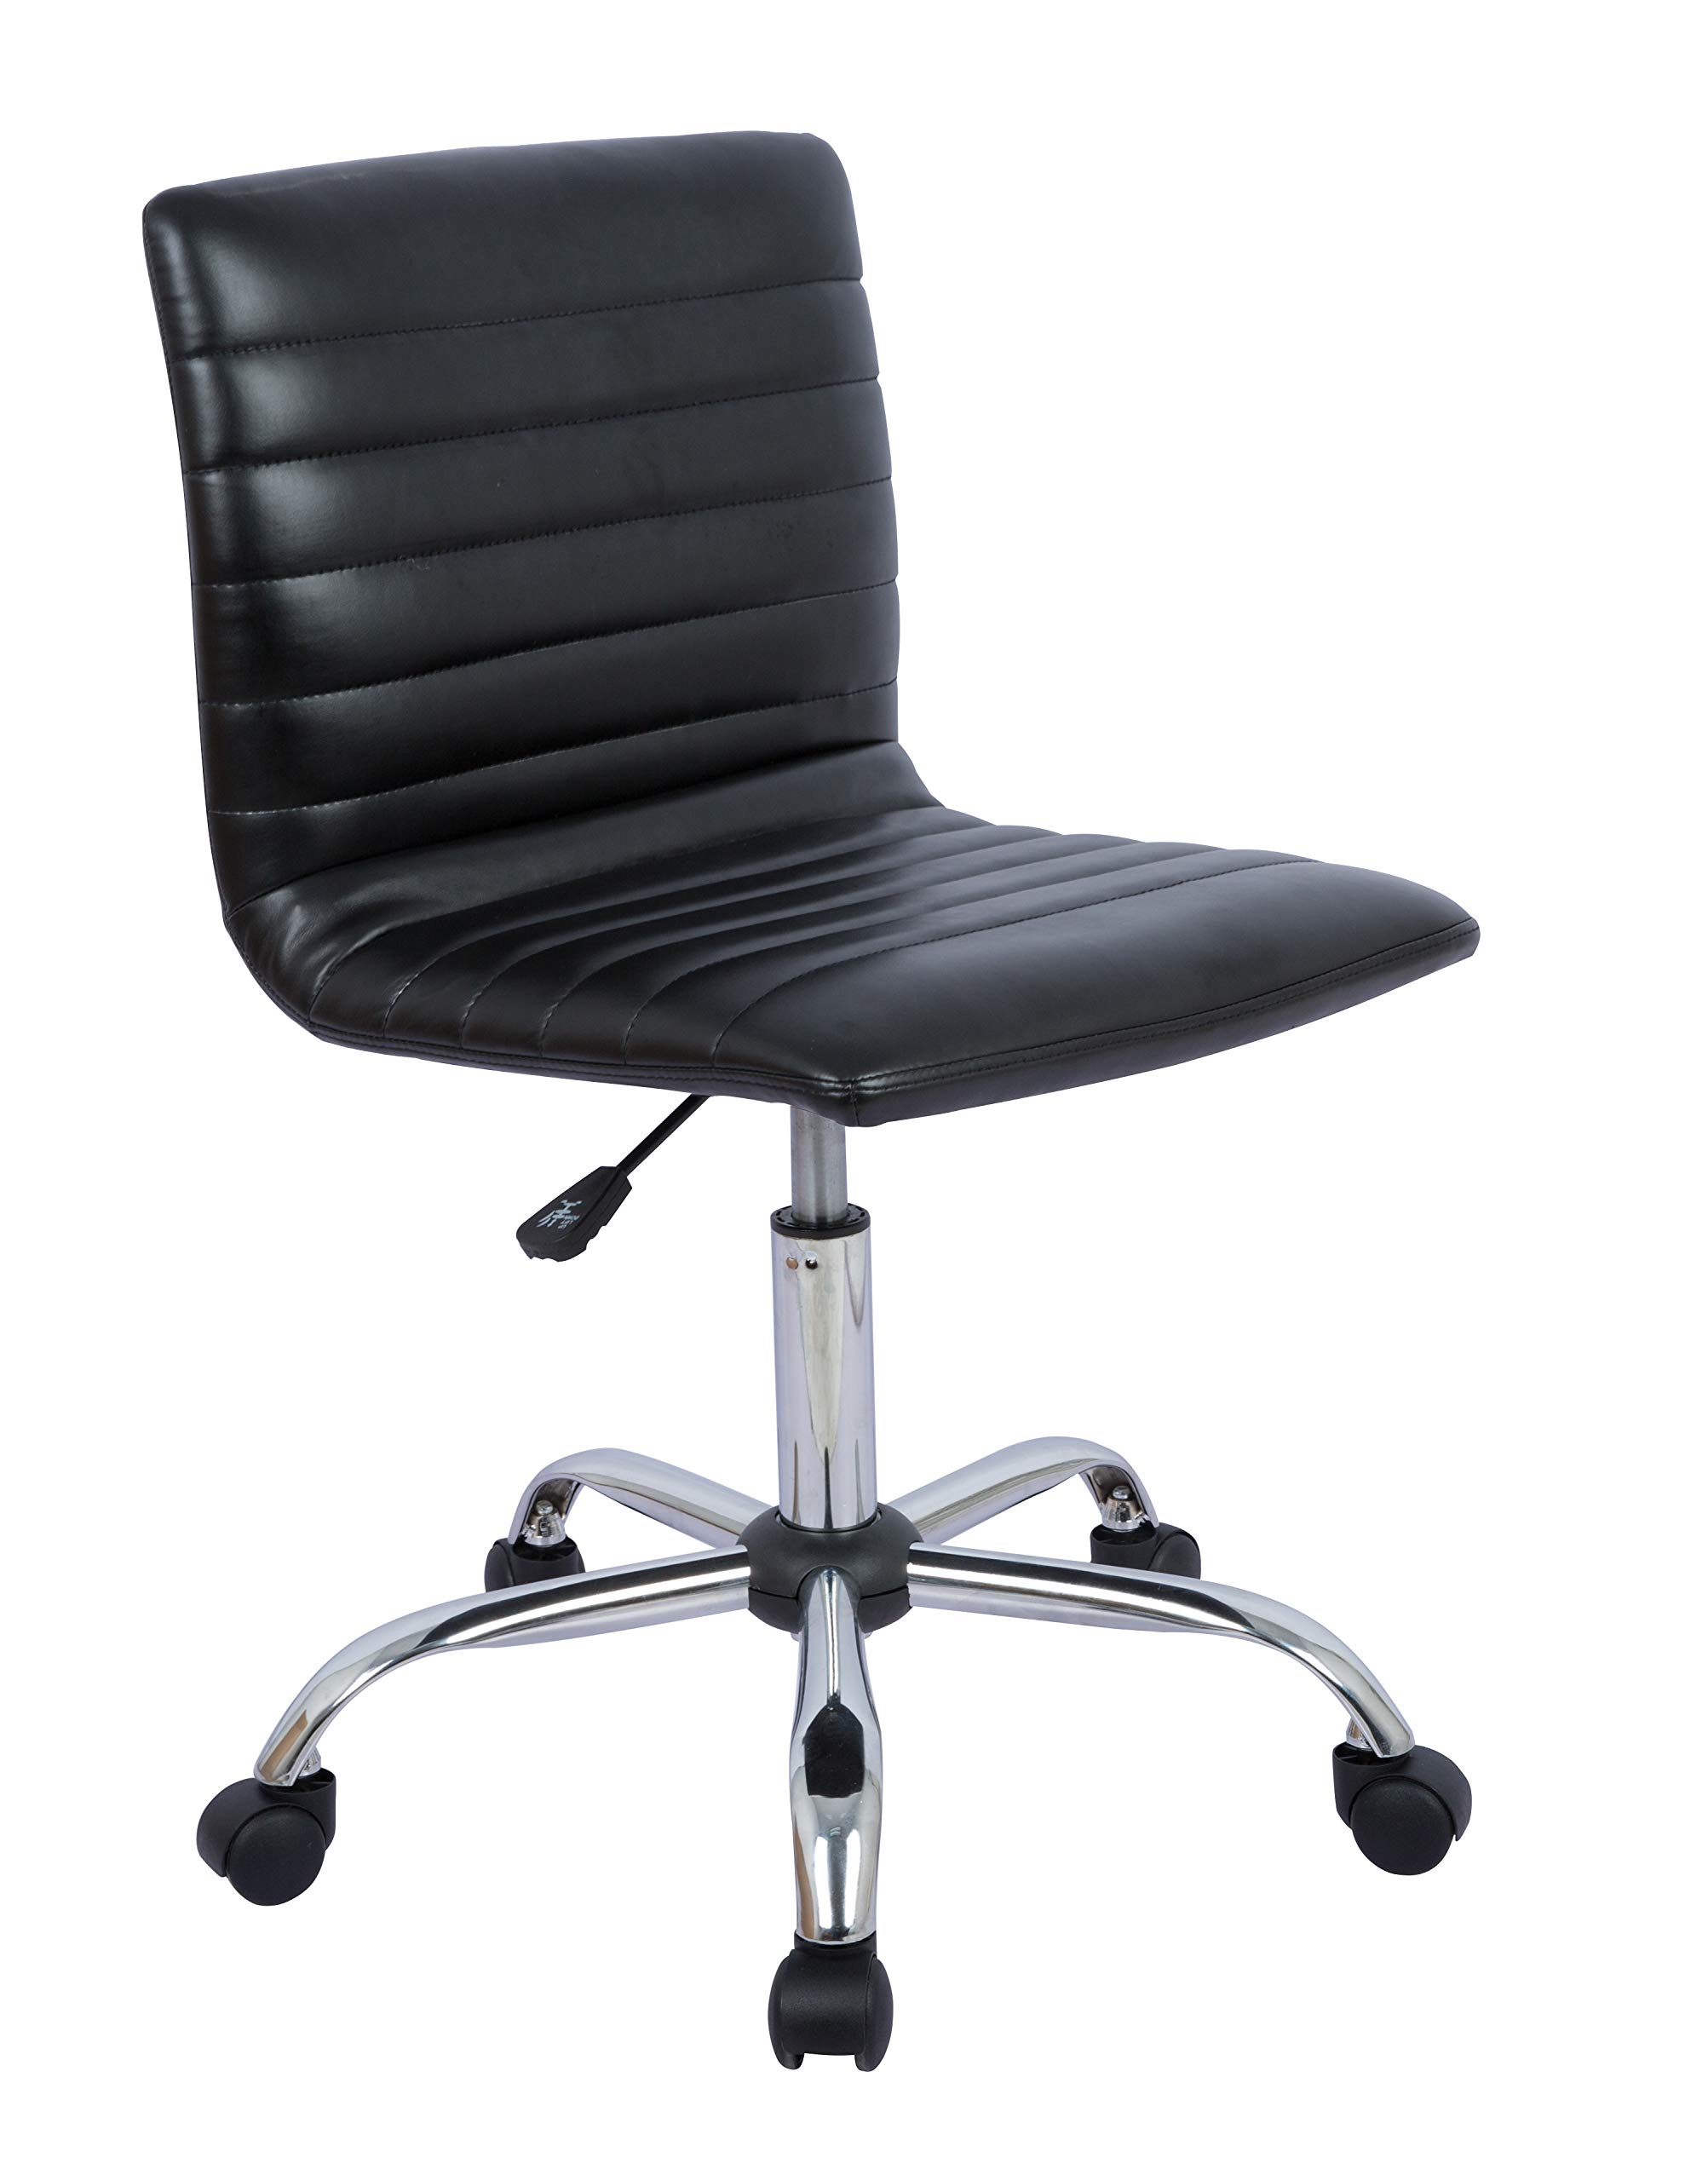 AmazonBasics Modern Adjustable Low Back Armless Ribbed Office Desk Task Chair, Black